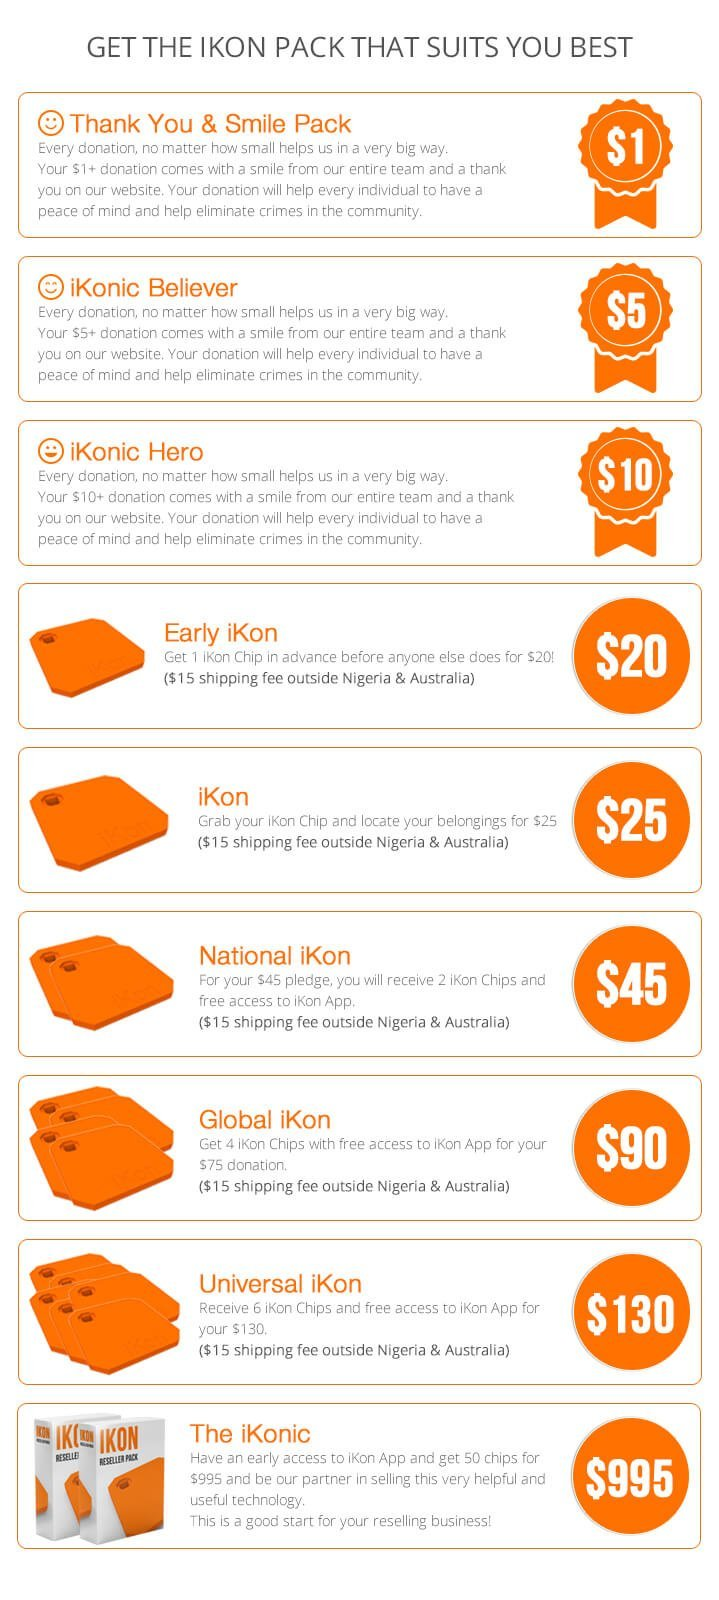 iKon Chip Perks on Indiegogo